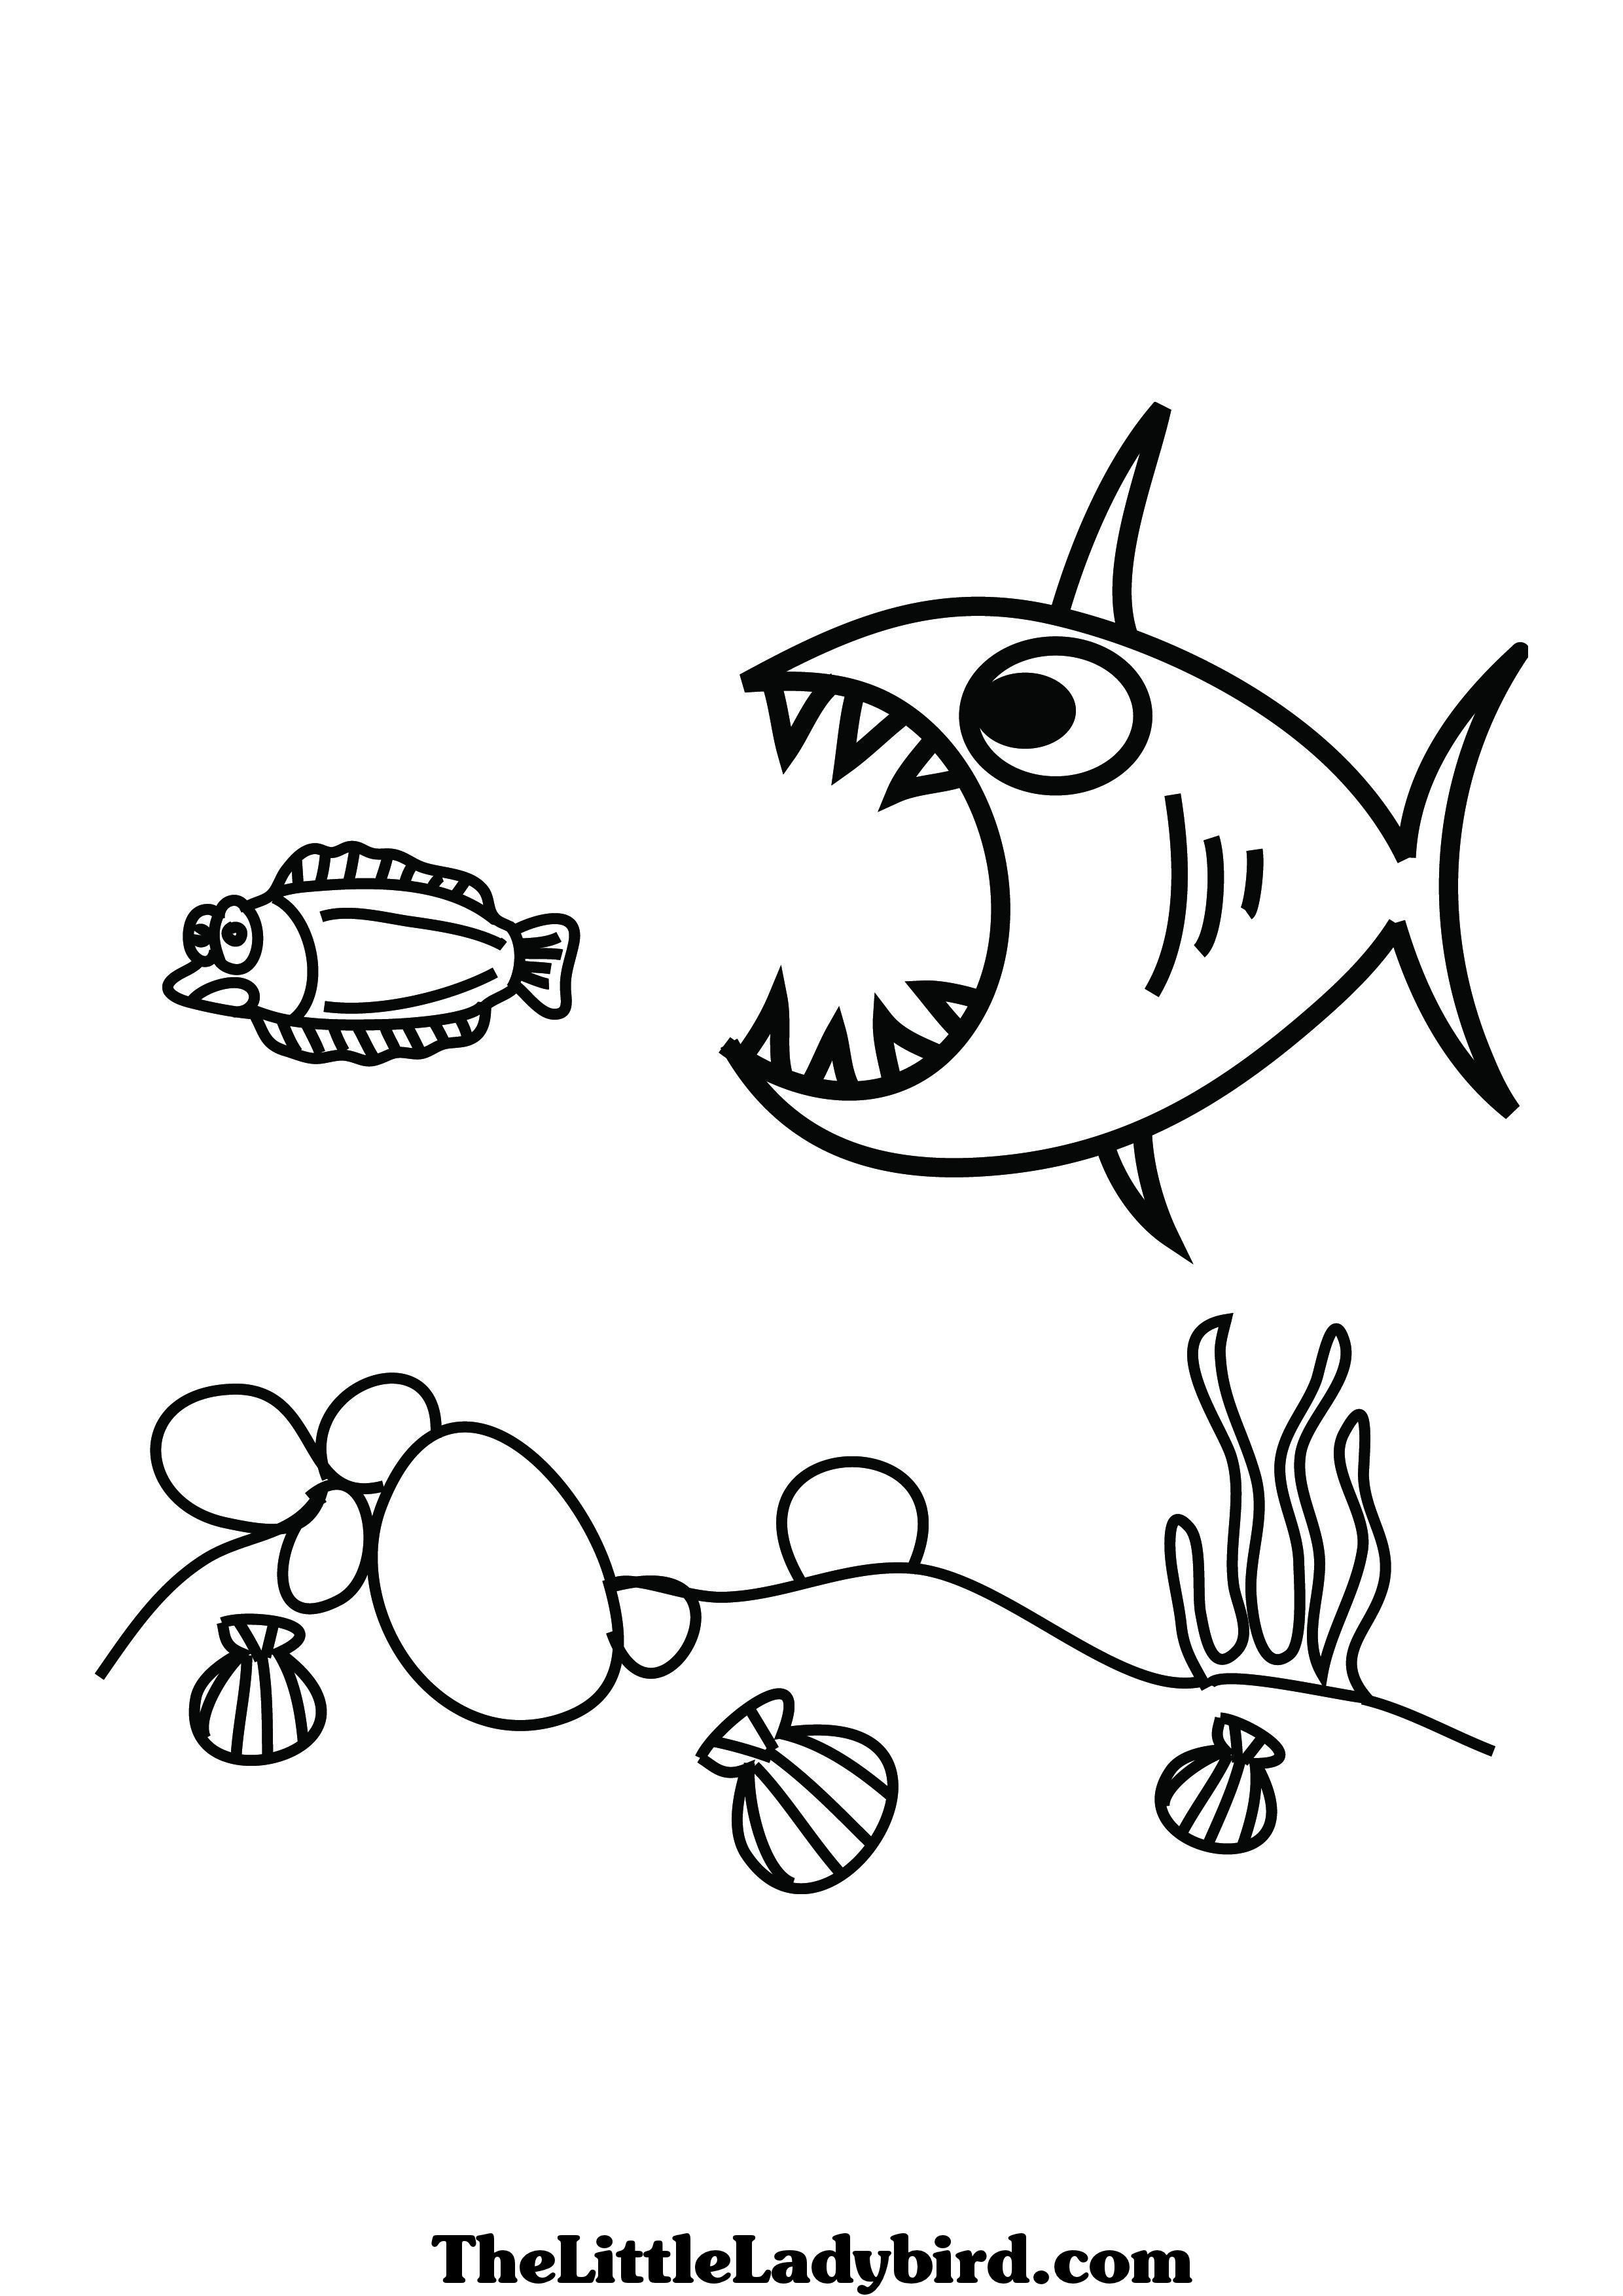 big picture coloring pages | Small Fish Drawing at GetDrawings.com | Free for personal ...